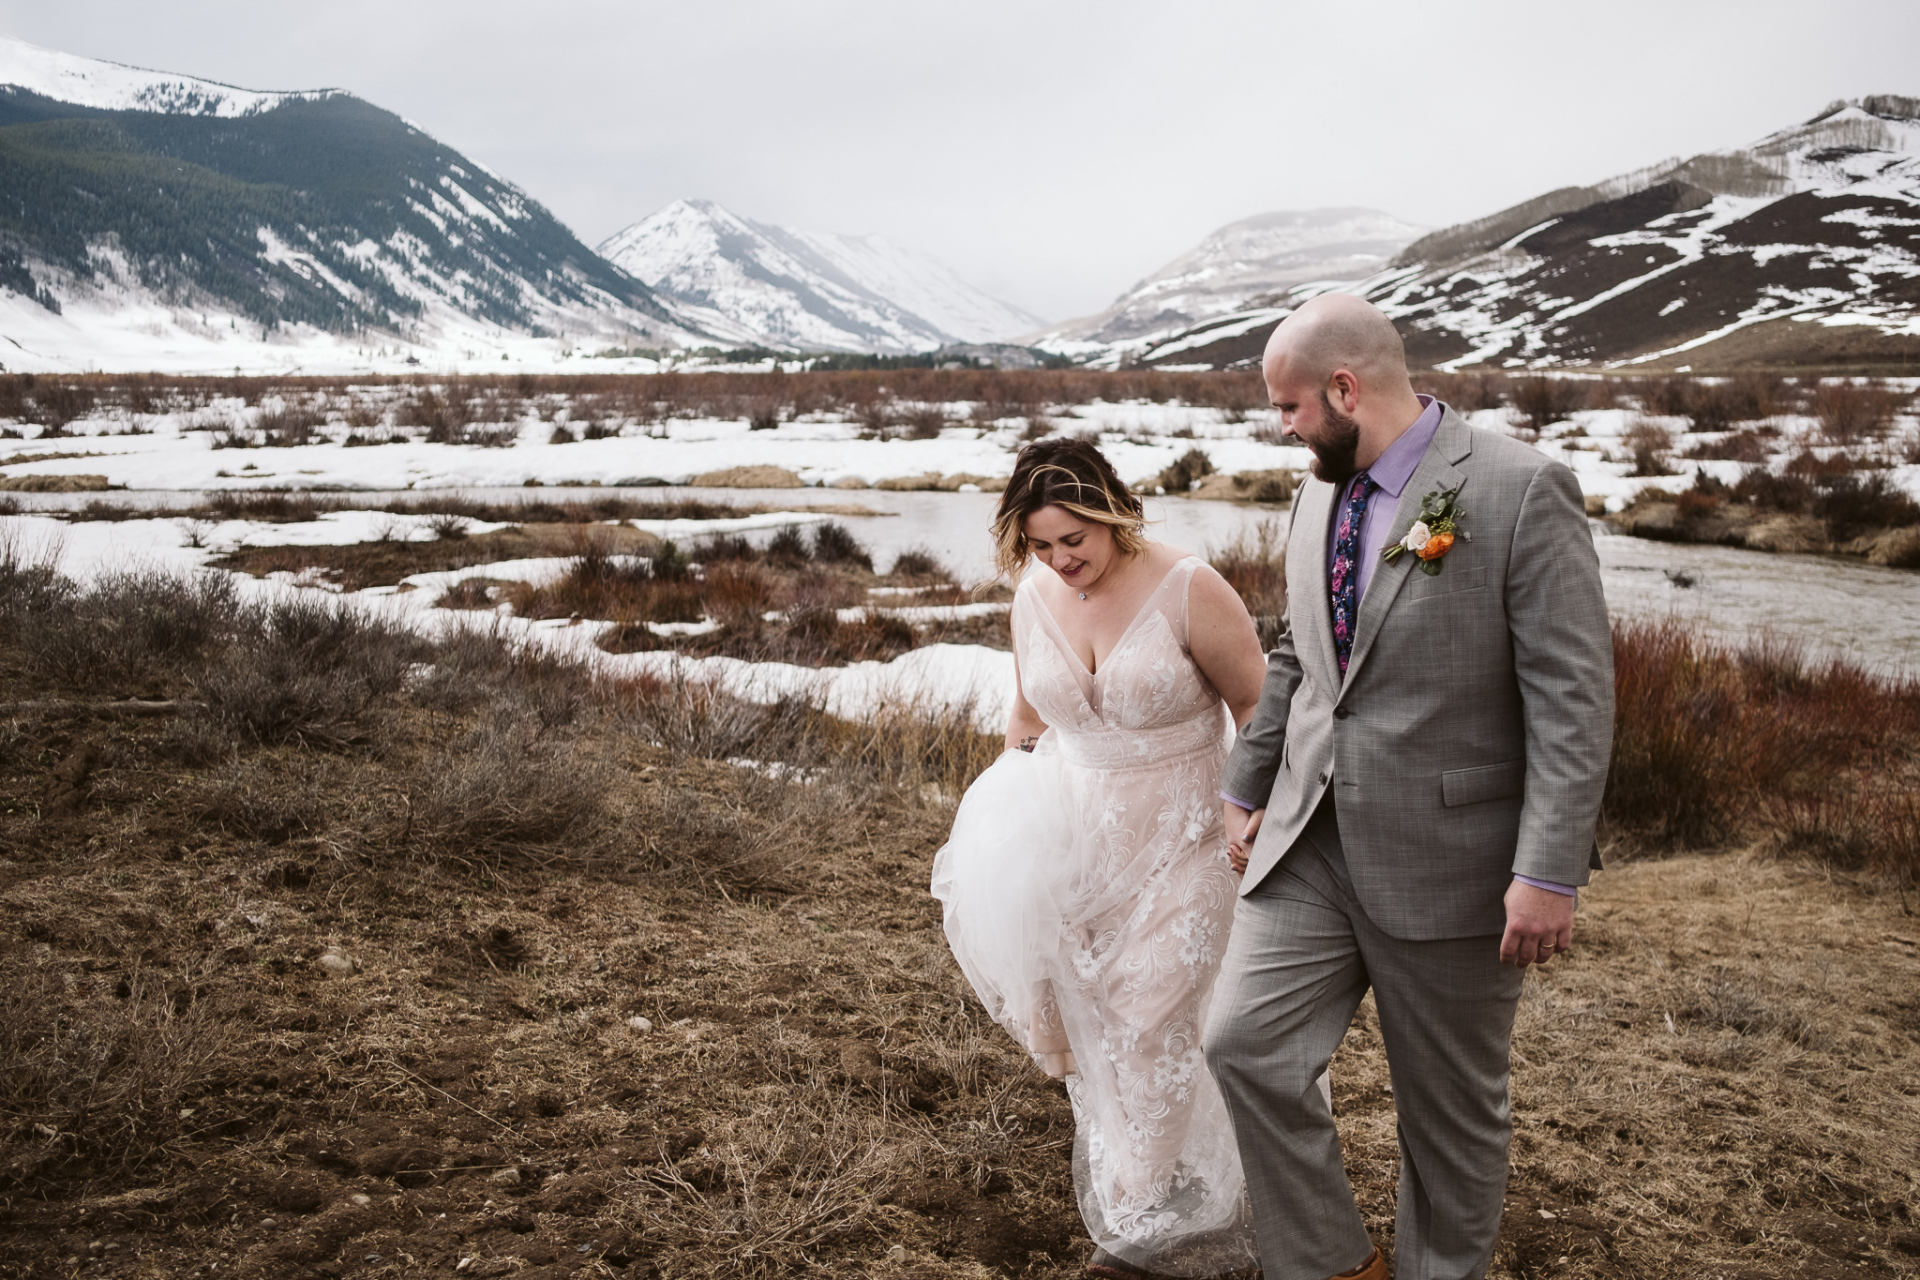 Colorado Adventure Elopement Couple Image | The couple hike around the Crested Butte valley after their elopement ceremony